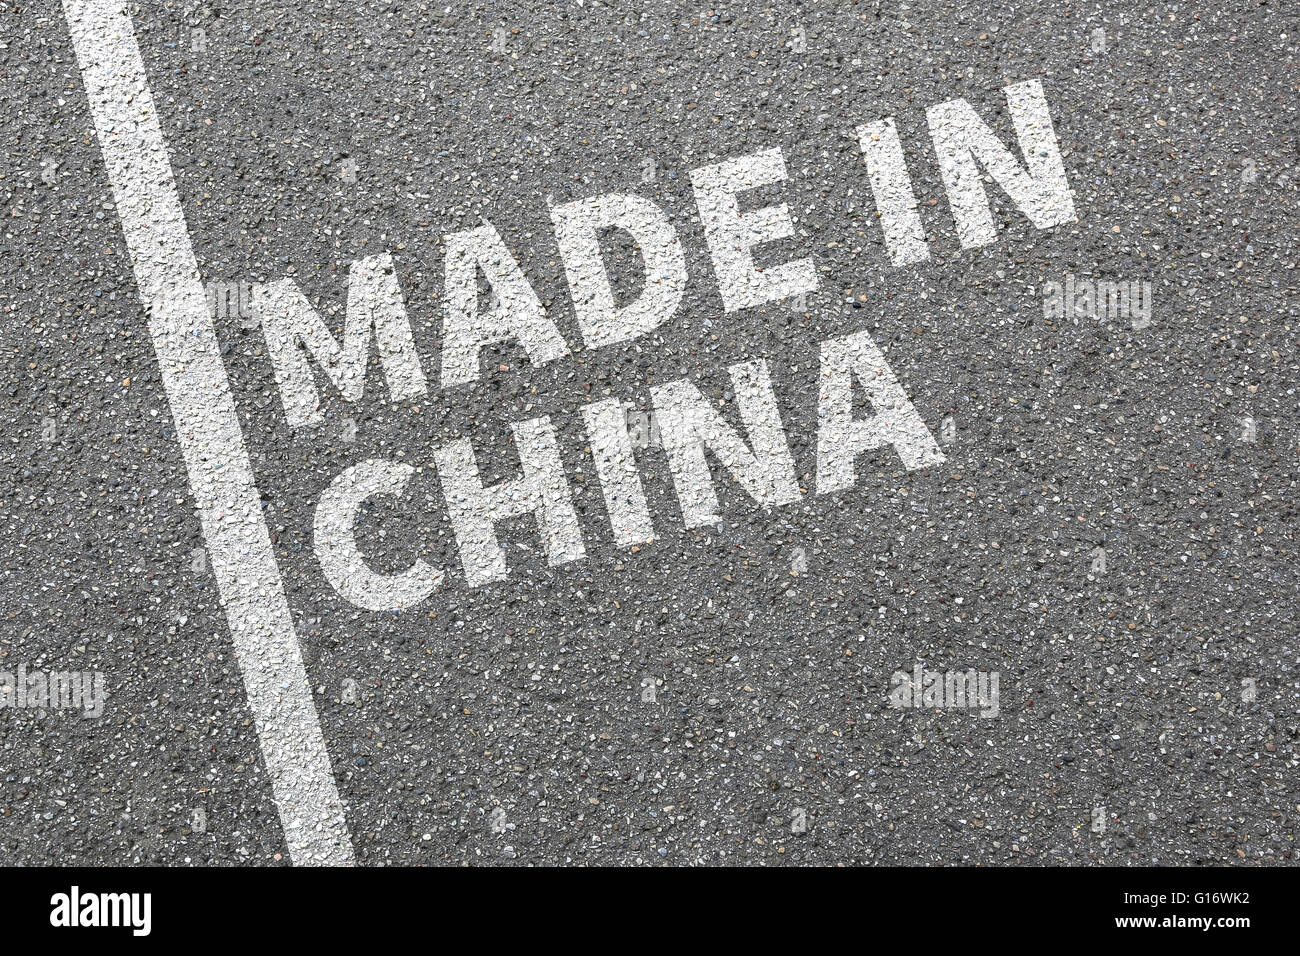 Made in China Produkt marketing Gesellschaft Qualitätskonzept Stockbild